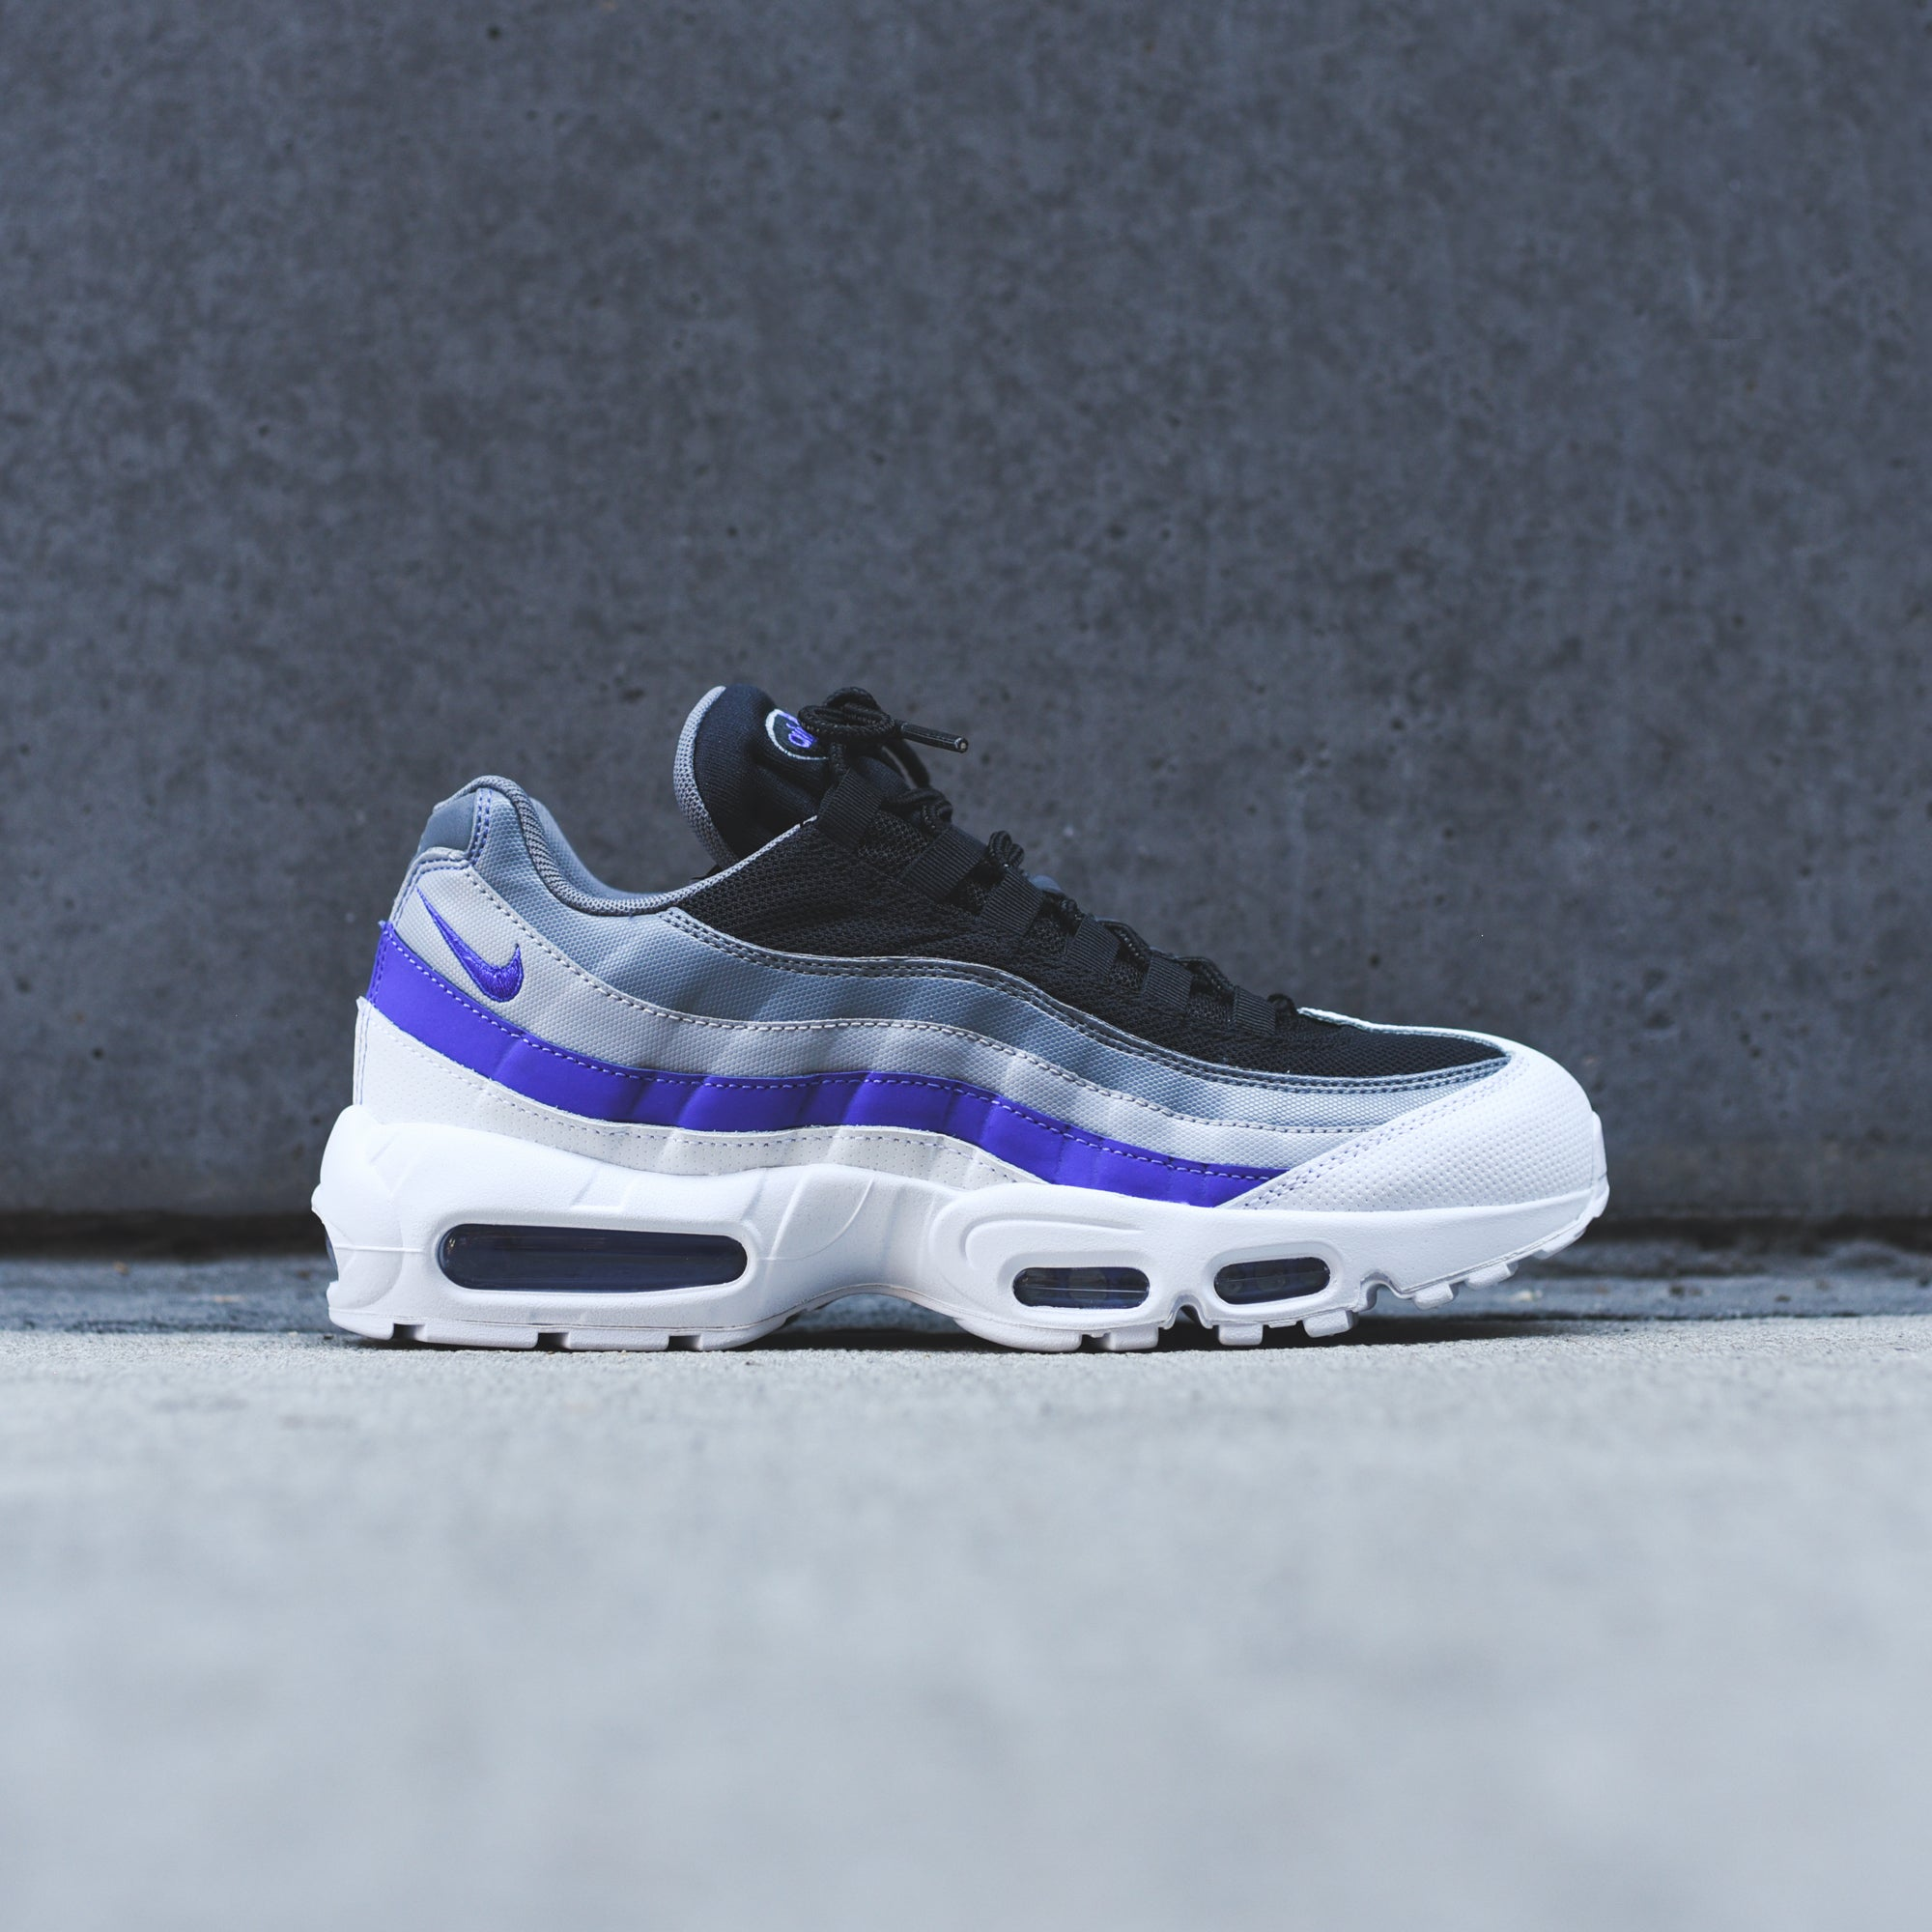 Nike Air Max 95 SE PRM W shoes purple blue